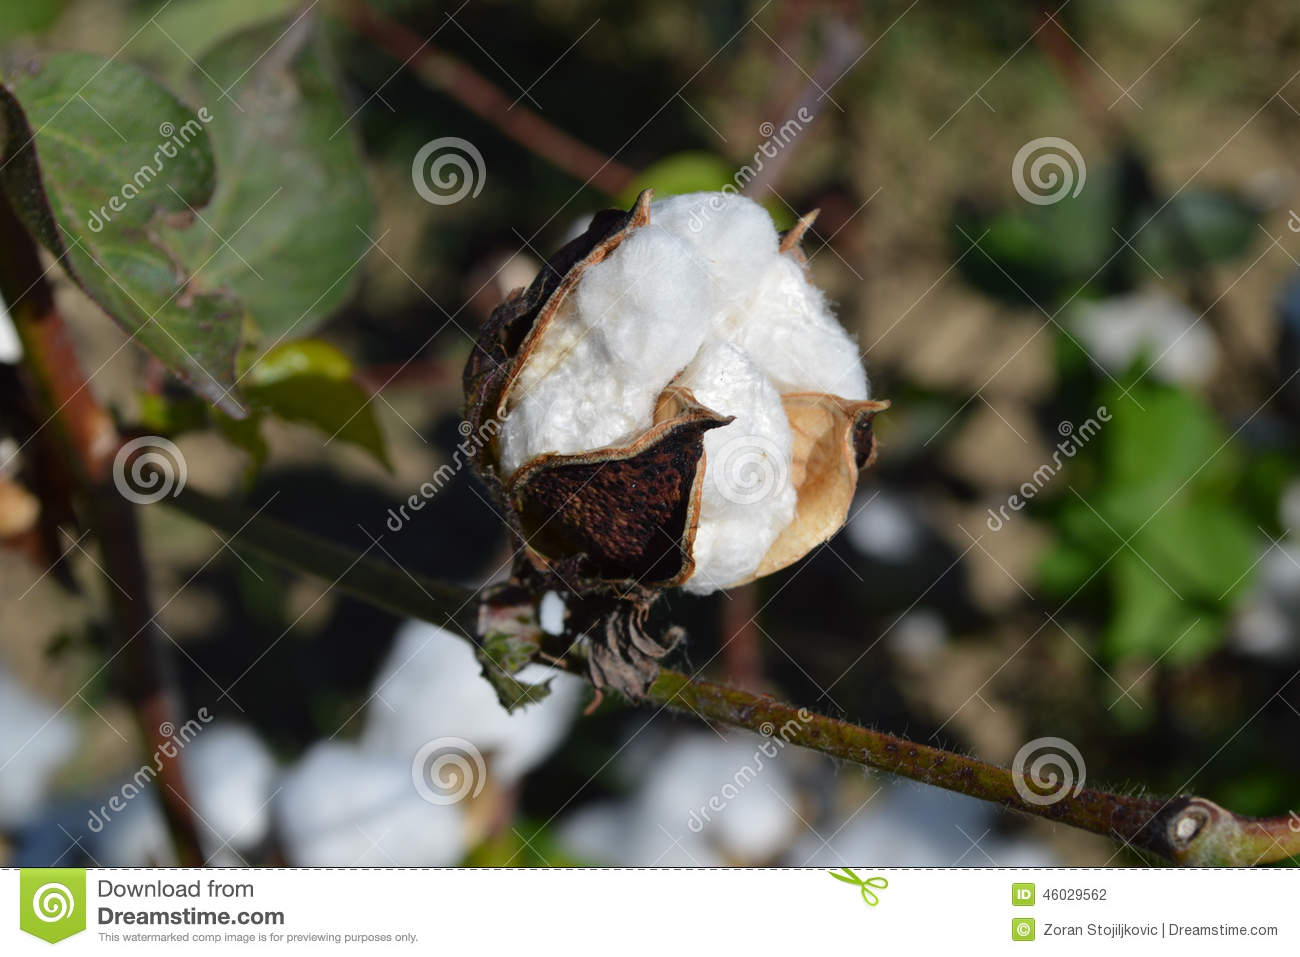 Cotton plant and its different parts - CottonAcres